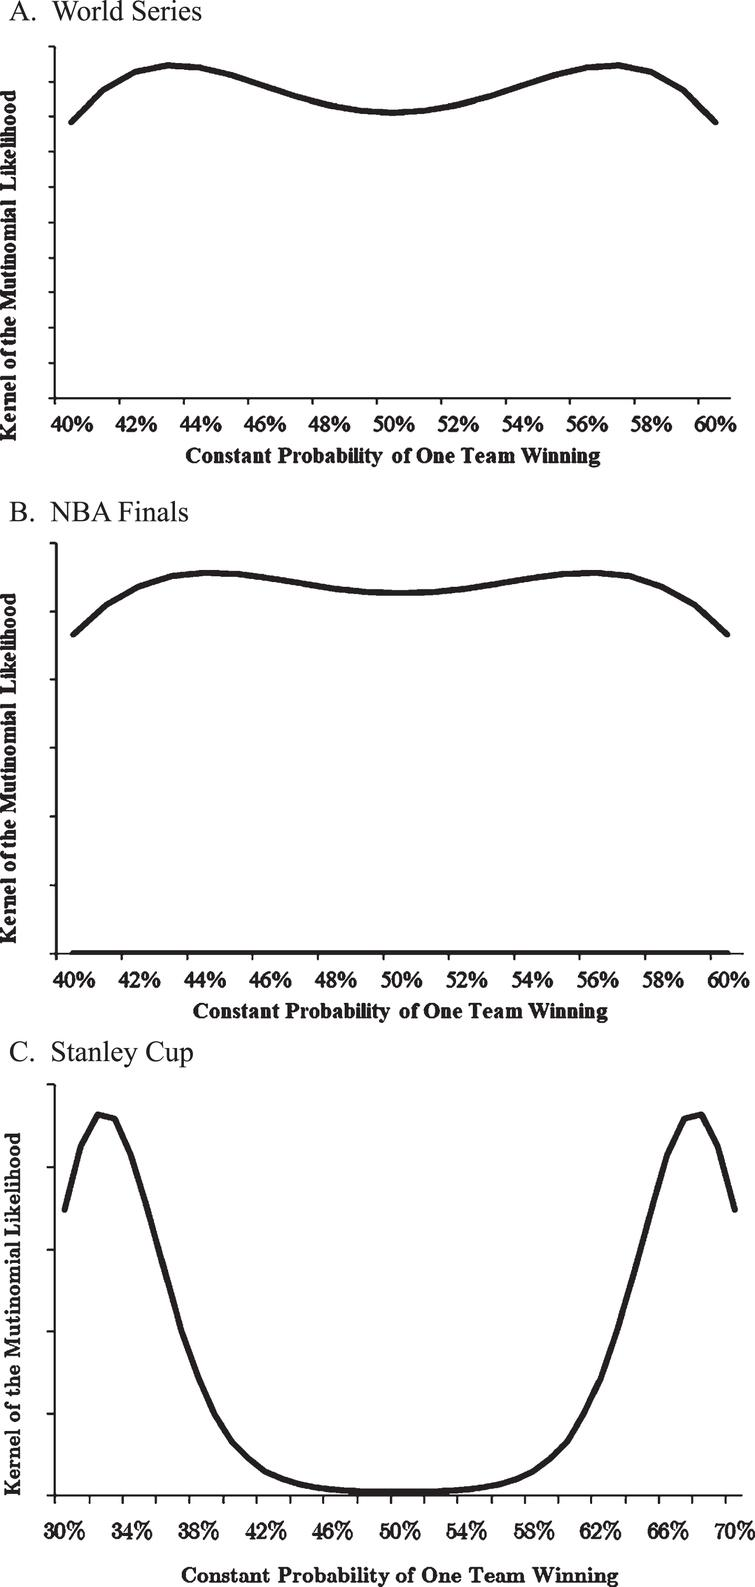 Maximum Likelihood Estimate of Constant Probability of One Team Winning the World Series, NBA Finals, and Stanley Cup. A. World Series. B. NBA Finals. C. Stanley Cup. The line is the value pL(0)N(4)pL(1)N(5)pL(2)N(6)pL(3)N(7), ,which is the kernel of the multinomial likelihood function where pL(j) is the probability that the team that loses the series wins j games (j=0, 1, 2, or 3) and N(i) is the number of four-, five-, six-, and seven-game series that have occurred. The observed maxima identify the maximum likelihood estimates of a constant probability of one team winning.